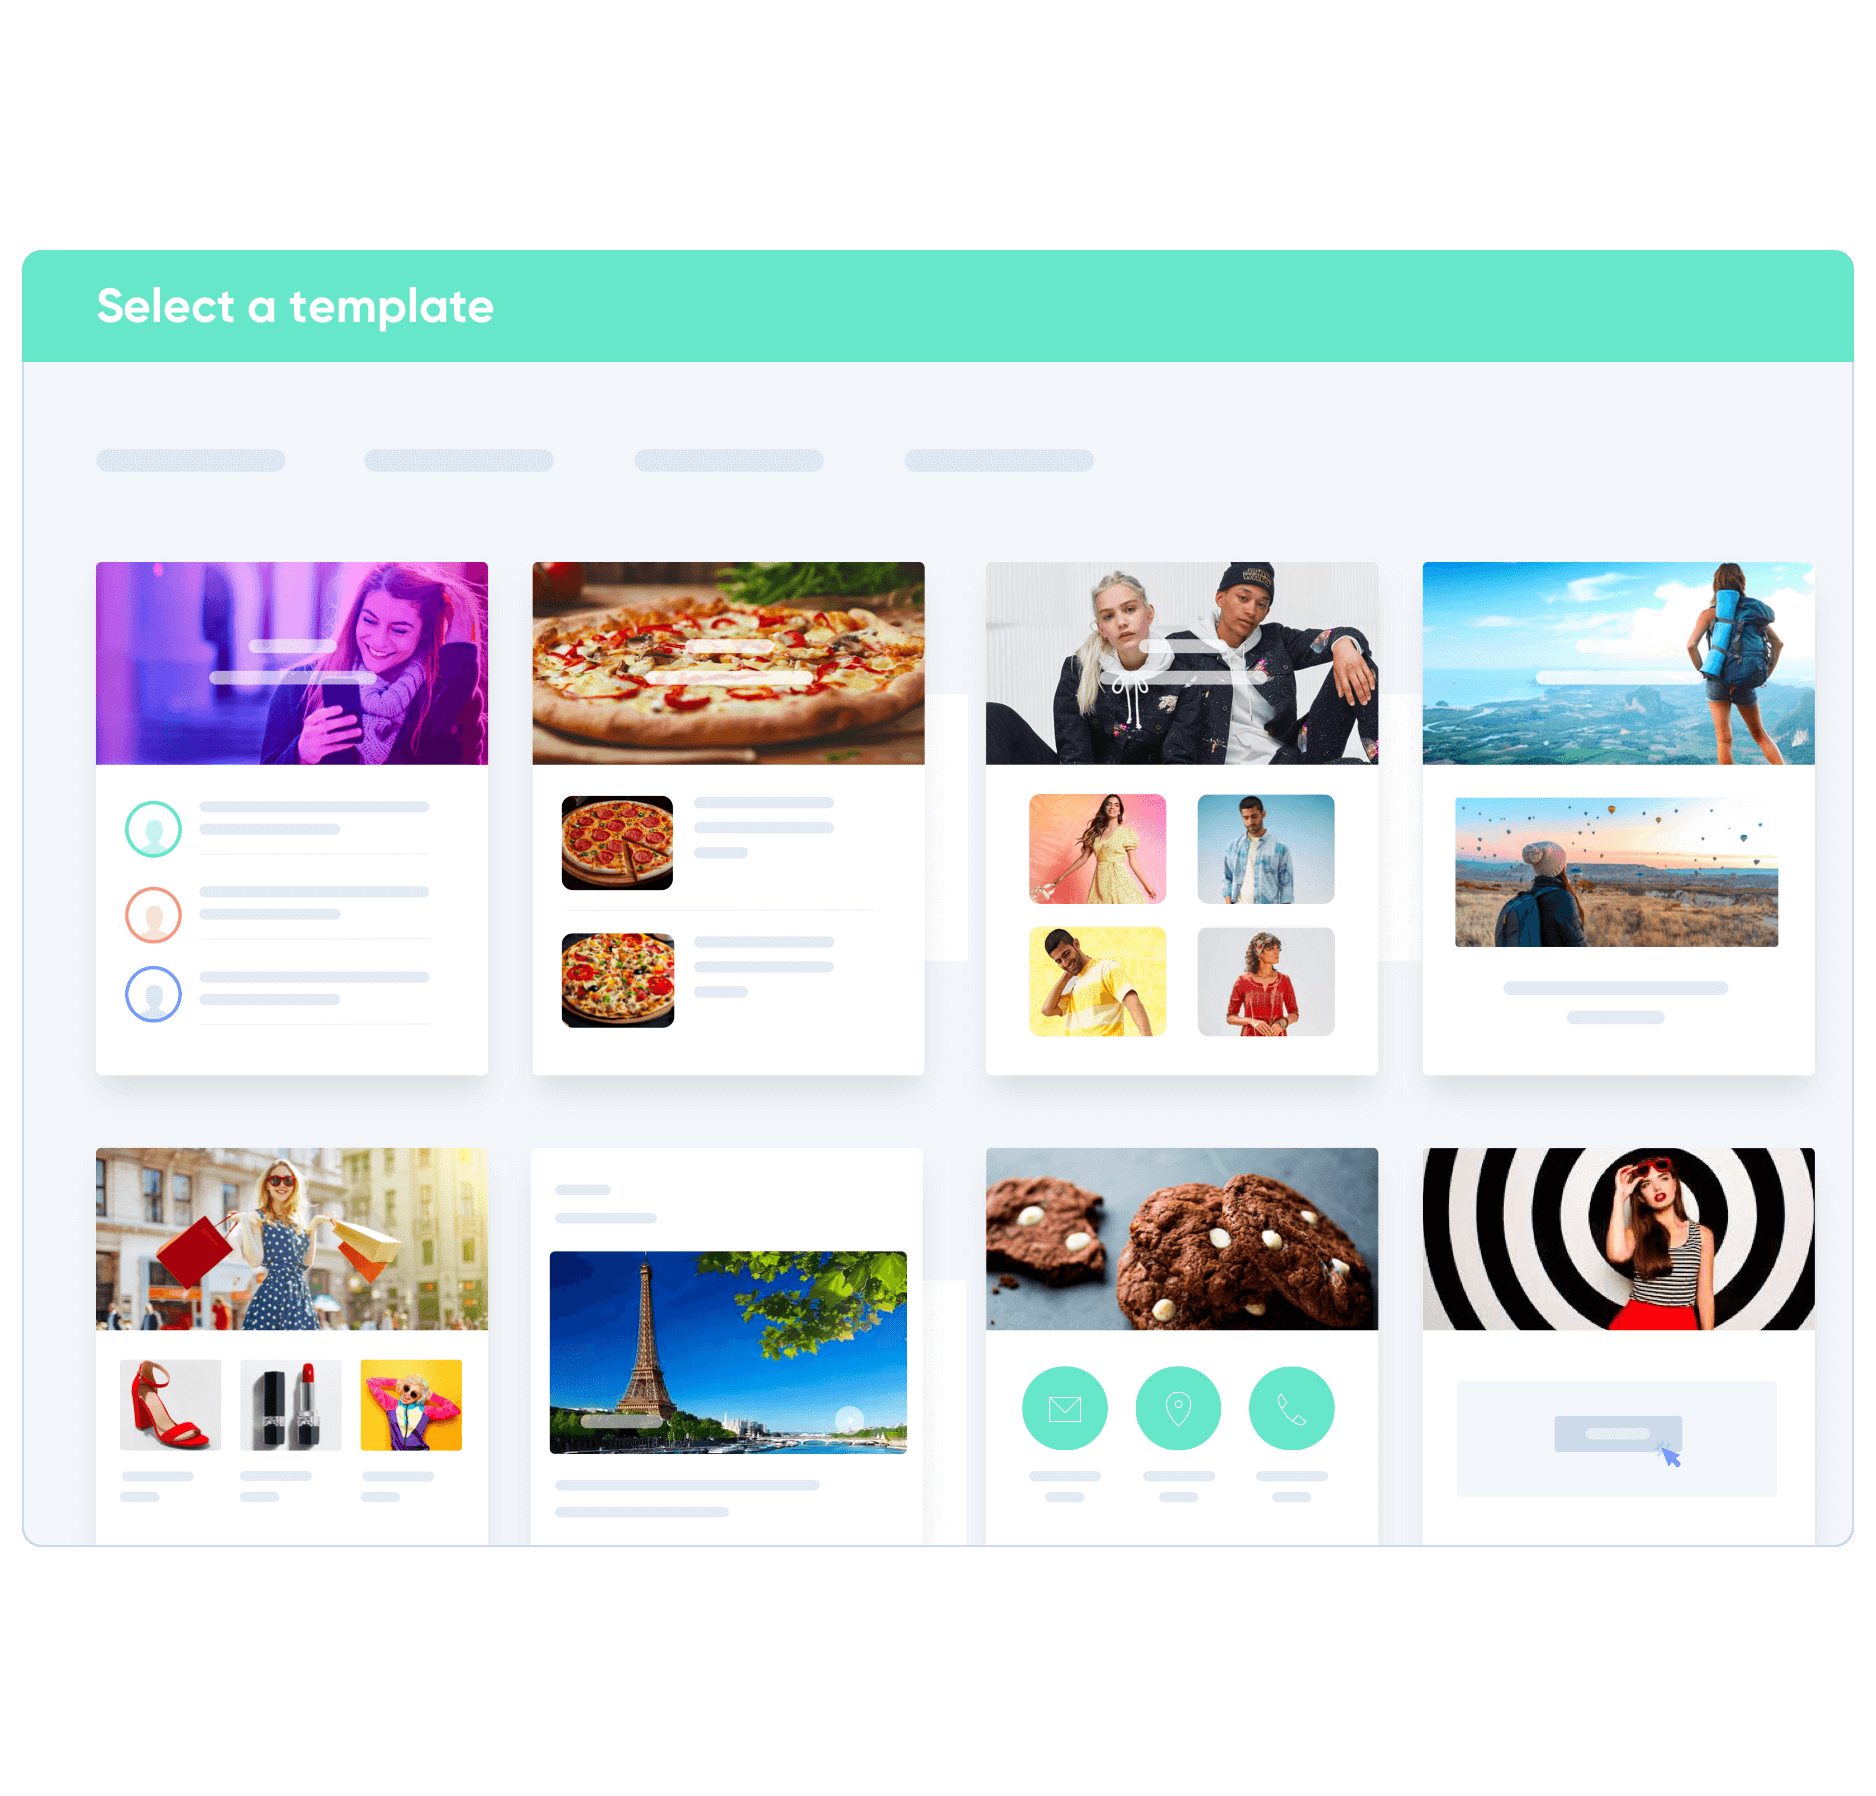 Template Gallery